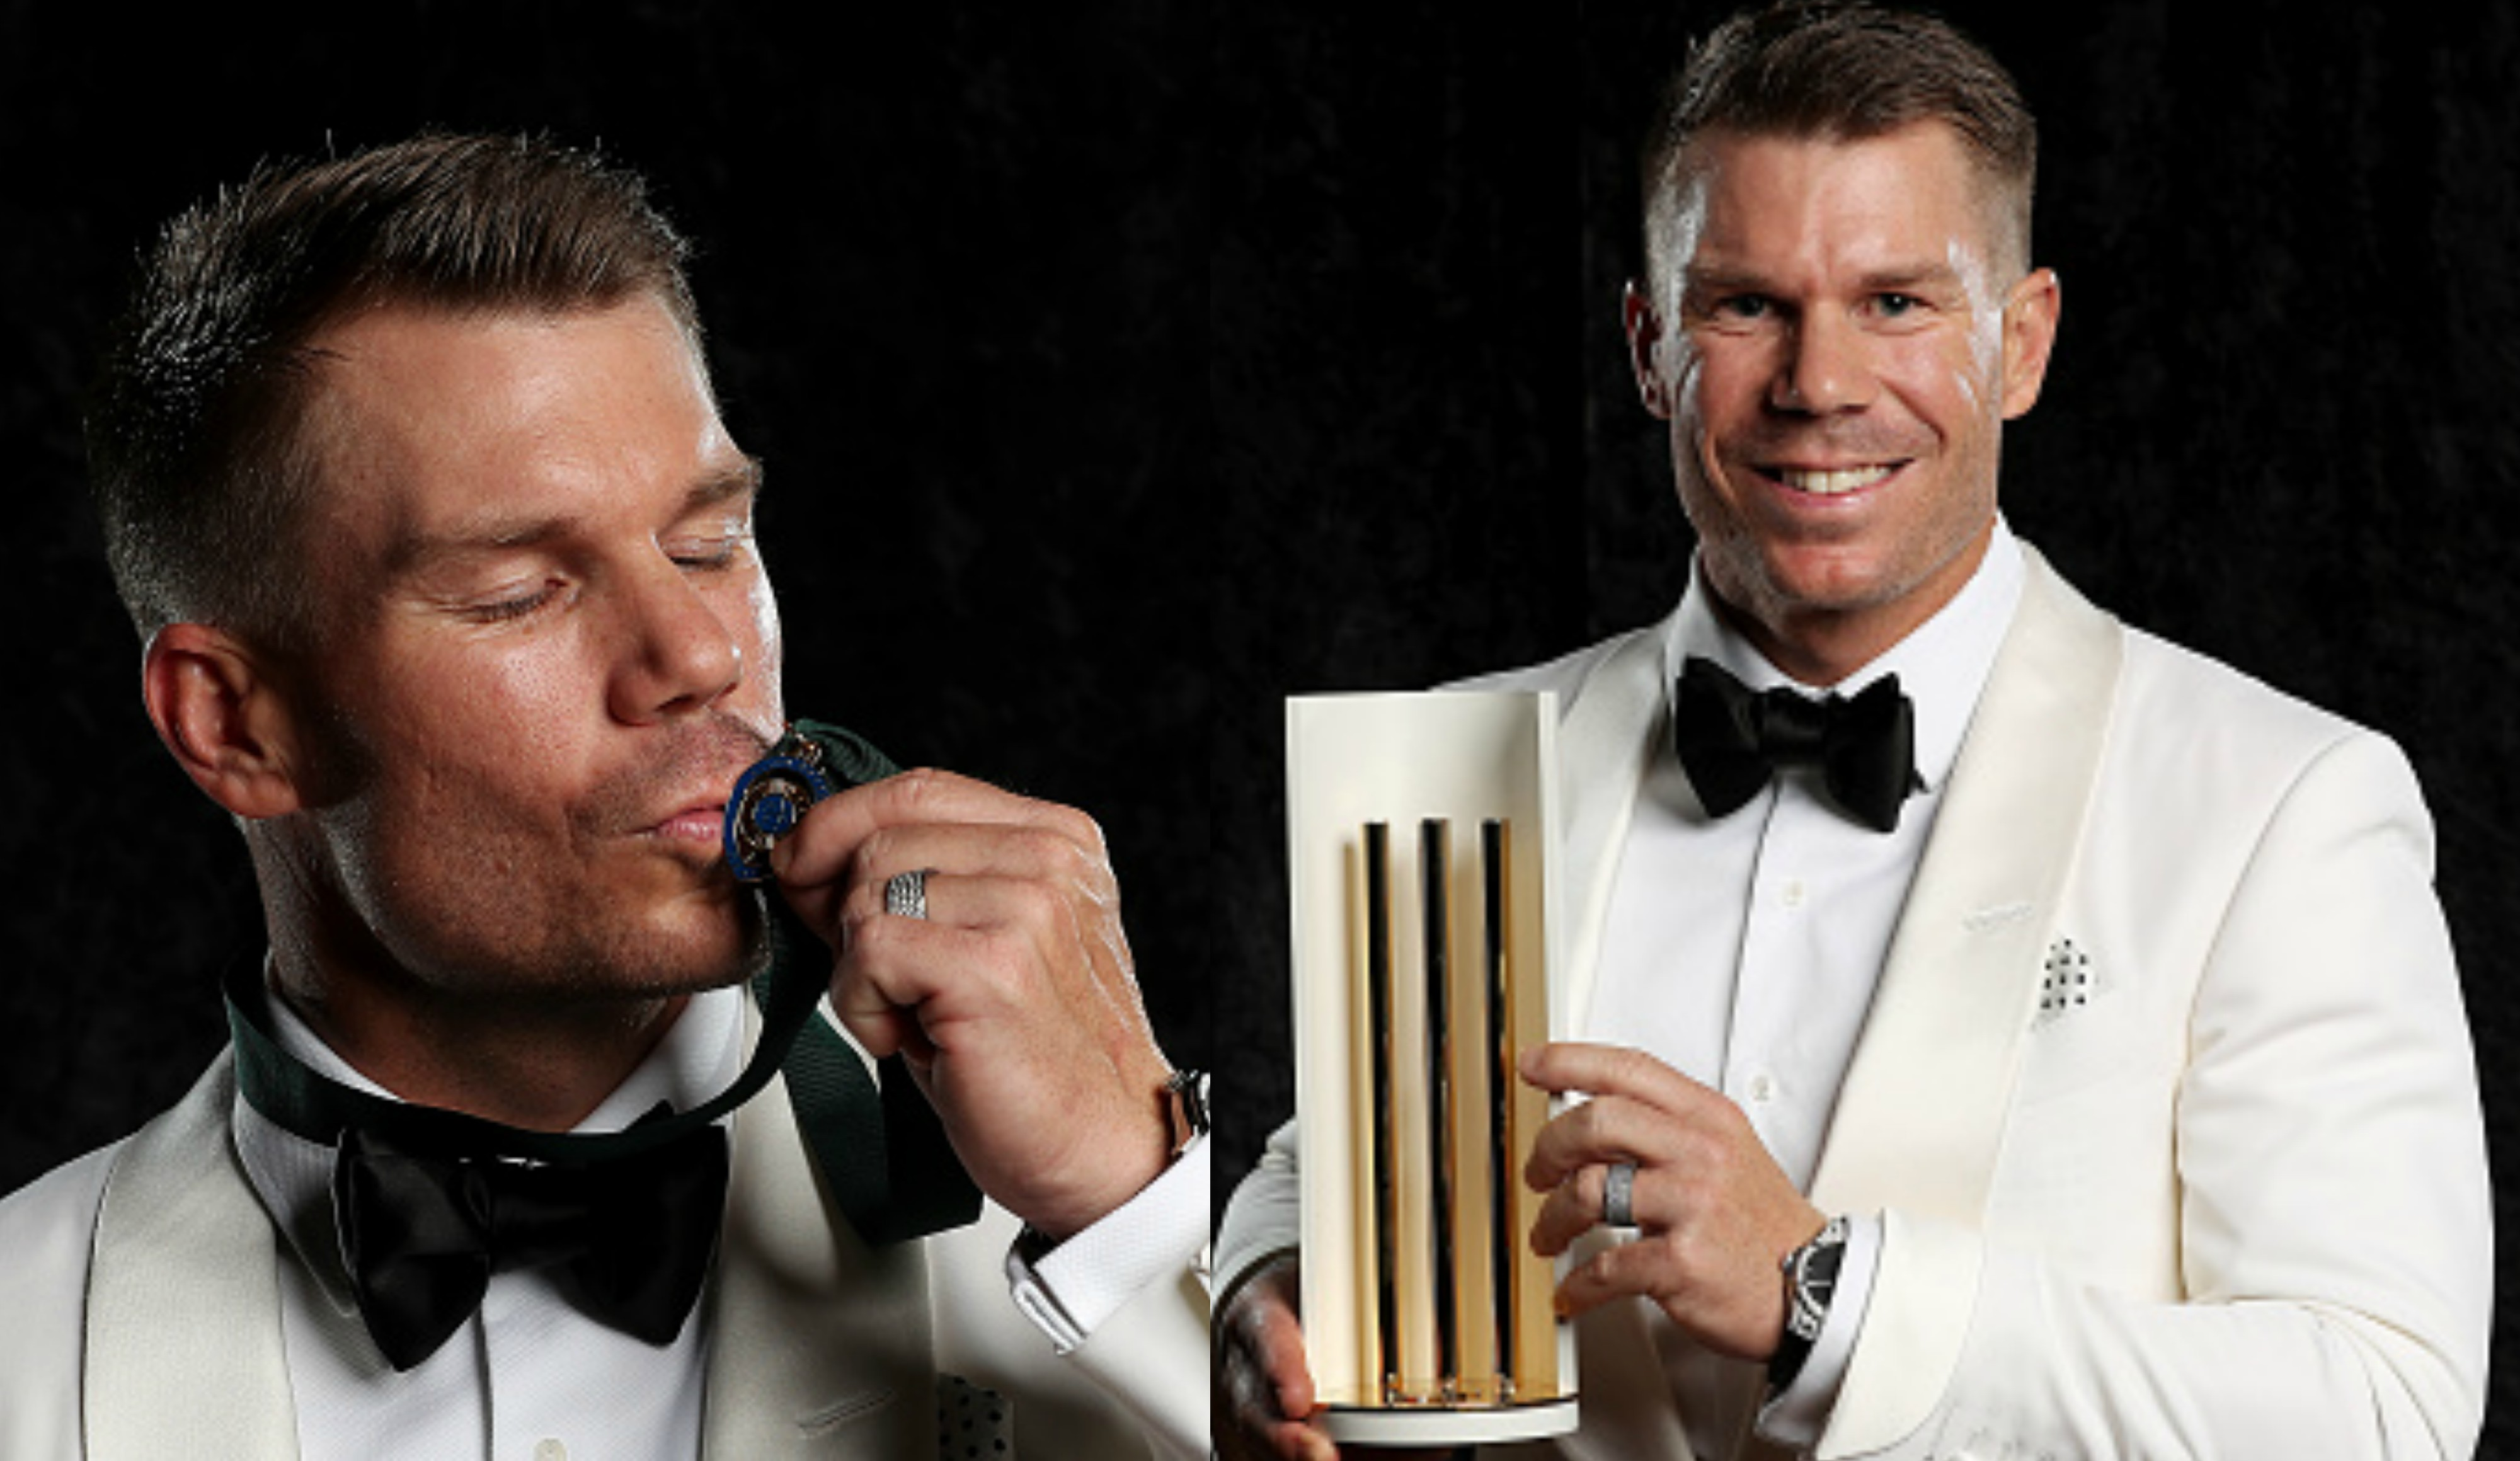 Warner with the Allan Border Medal and Men's T20I Player of the Year award | Getty Images